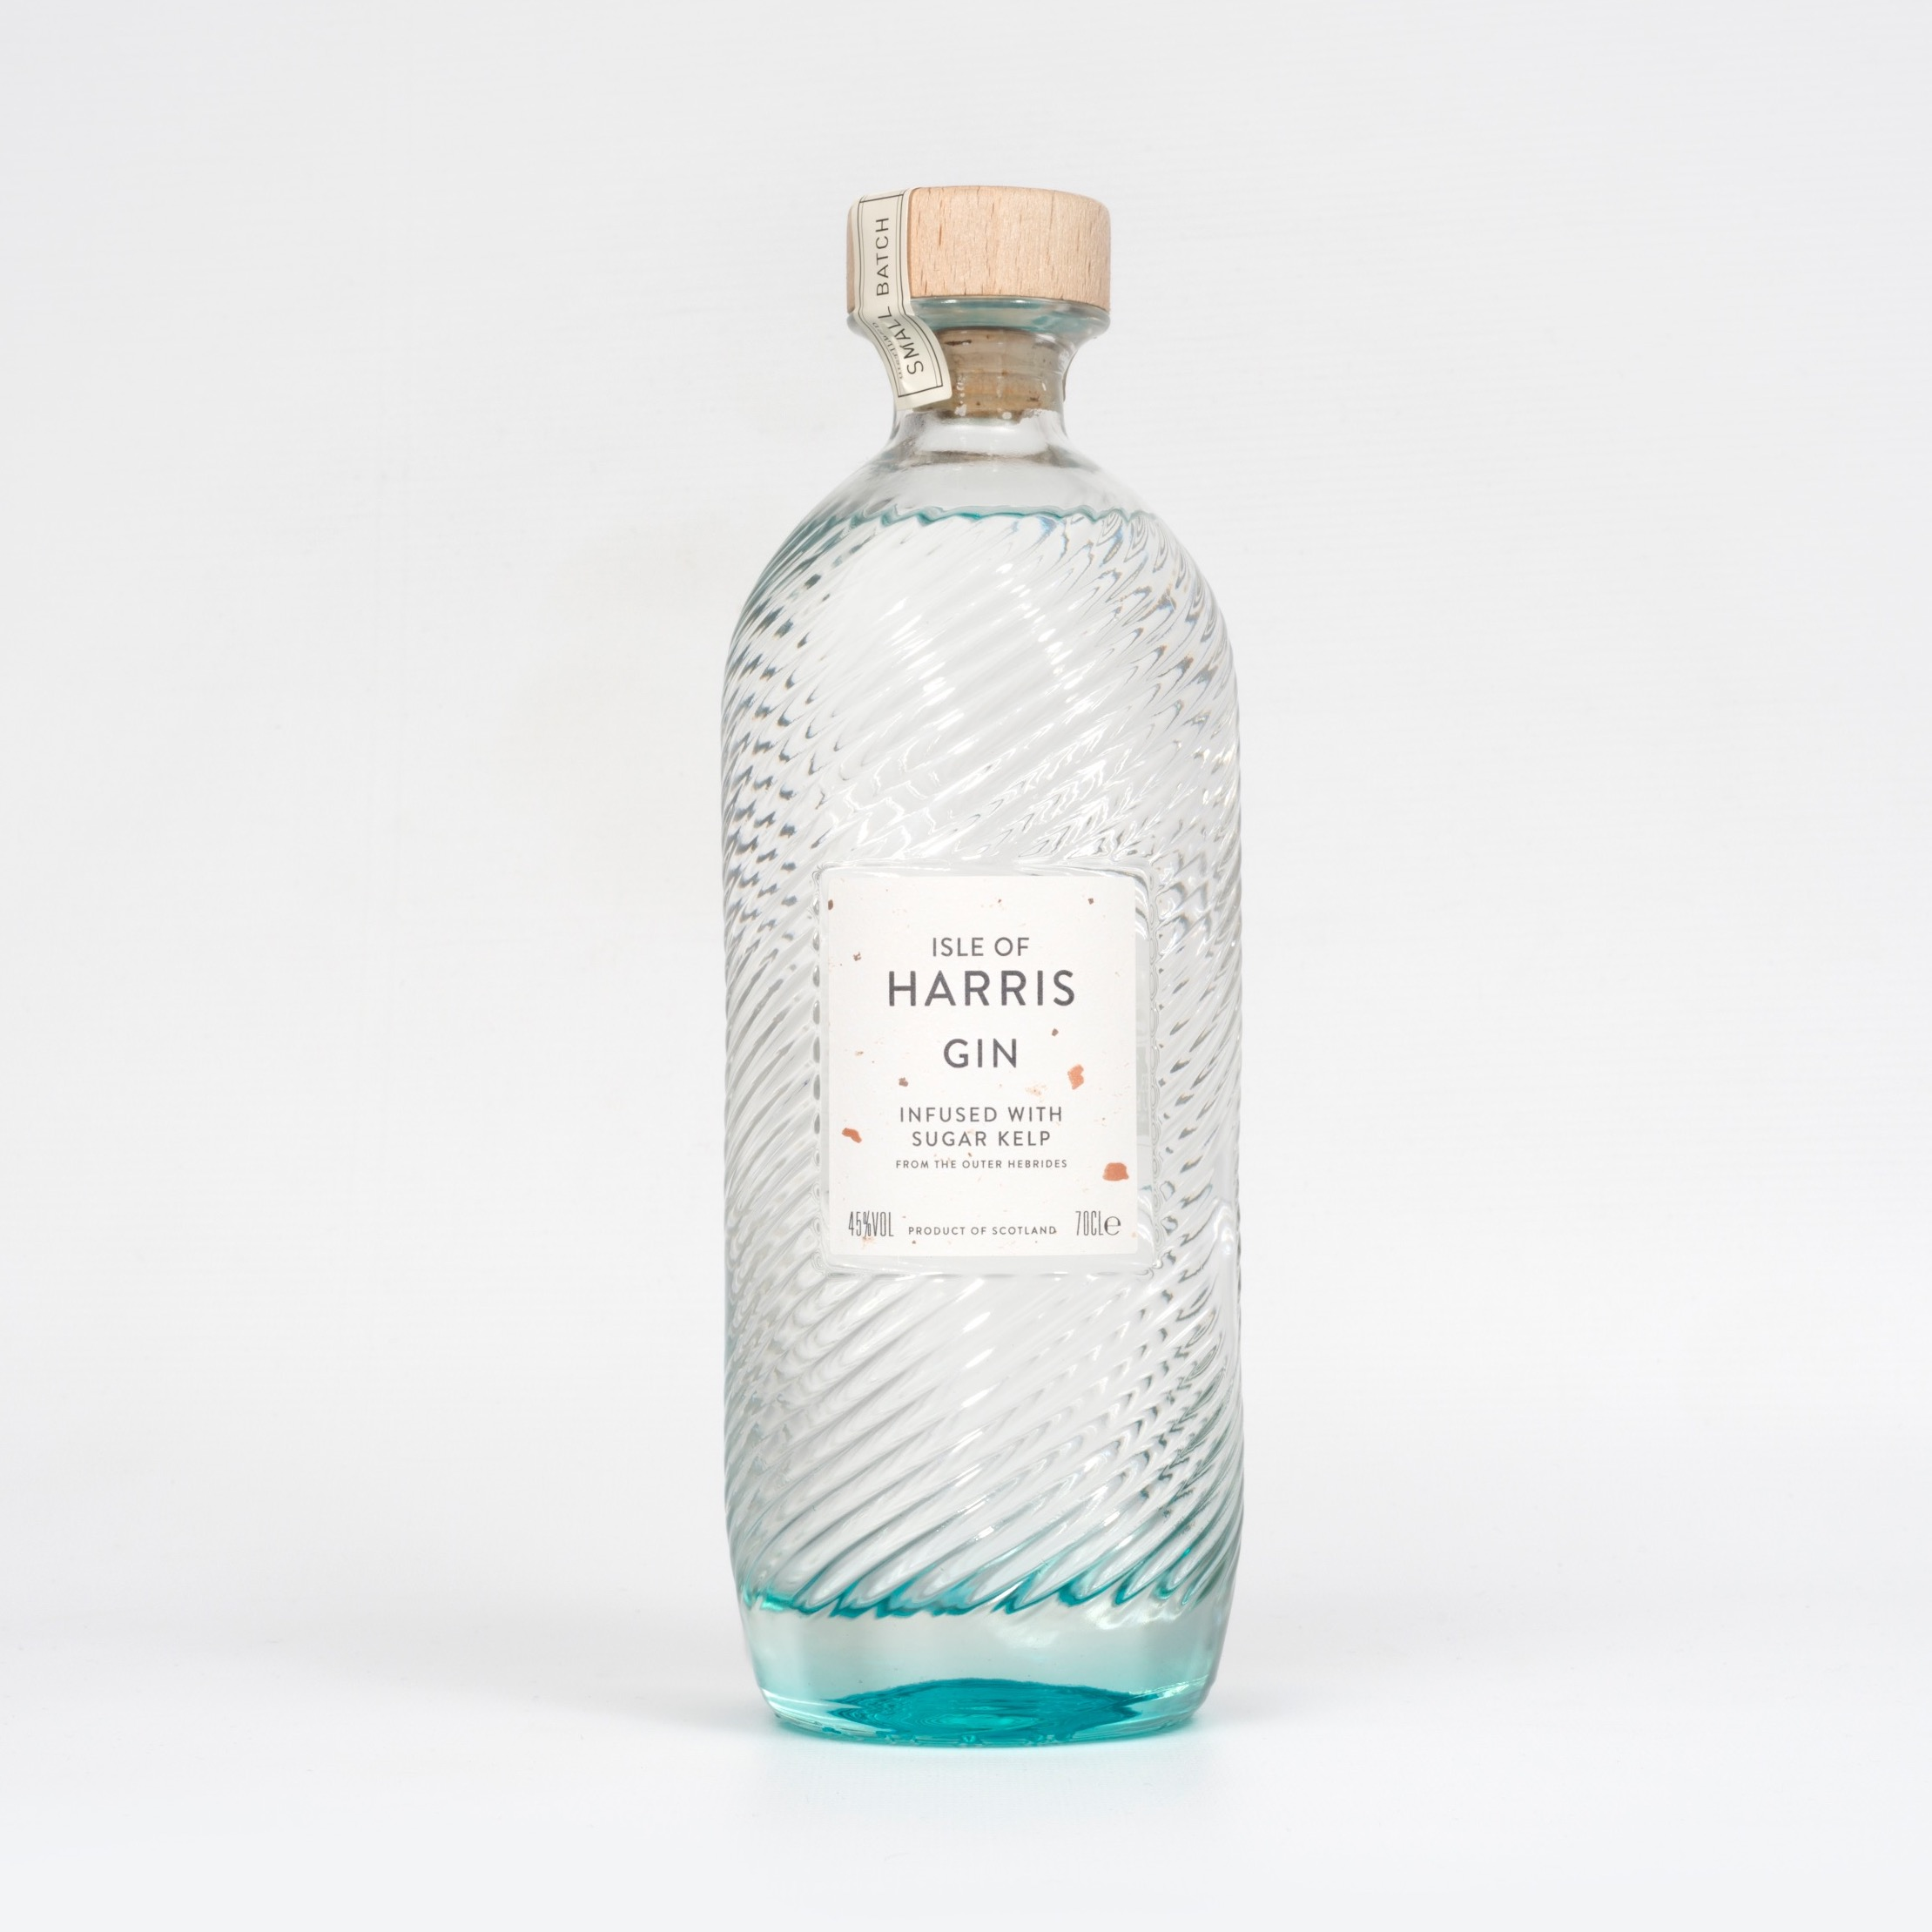 Isle of Harris Gin - The award-winning Scottish Isle of Harris Gin is the first spirit release from our distillery.